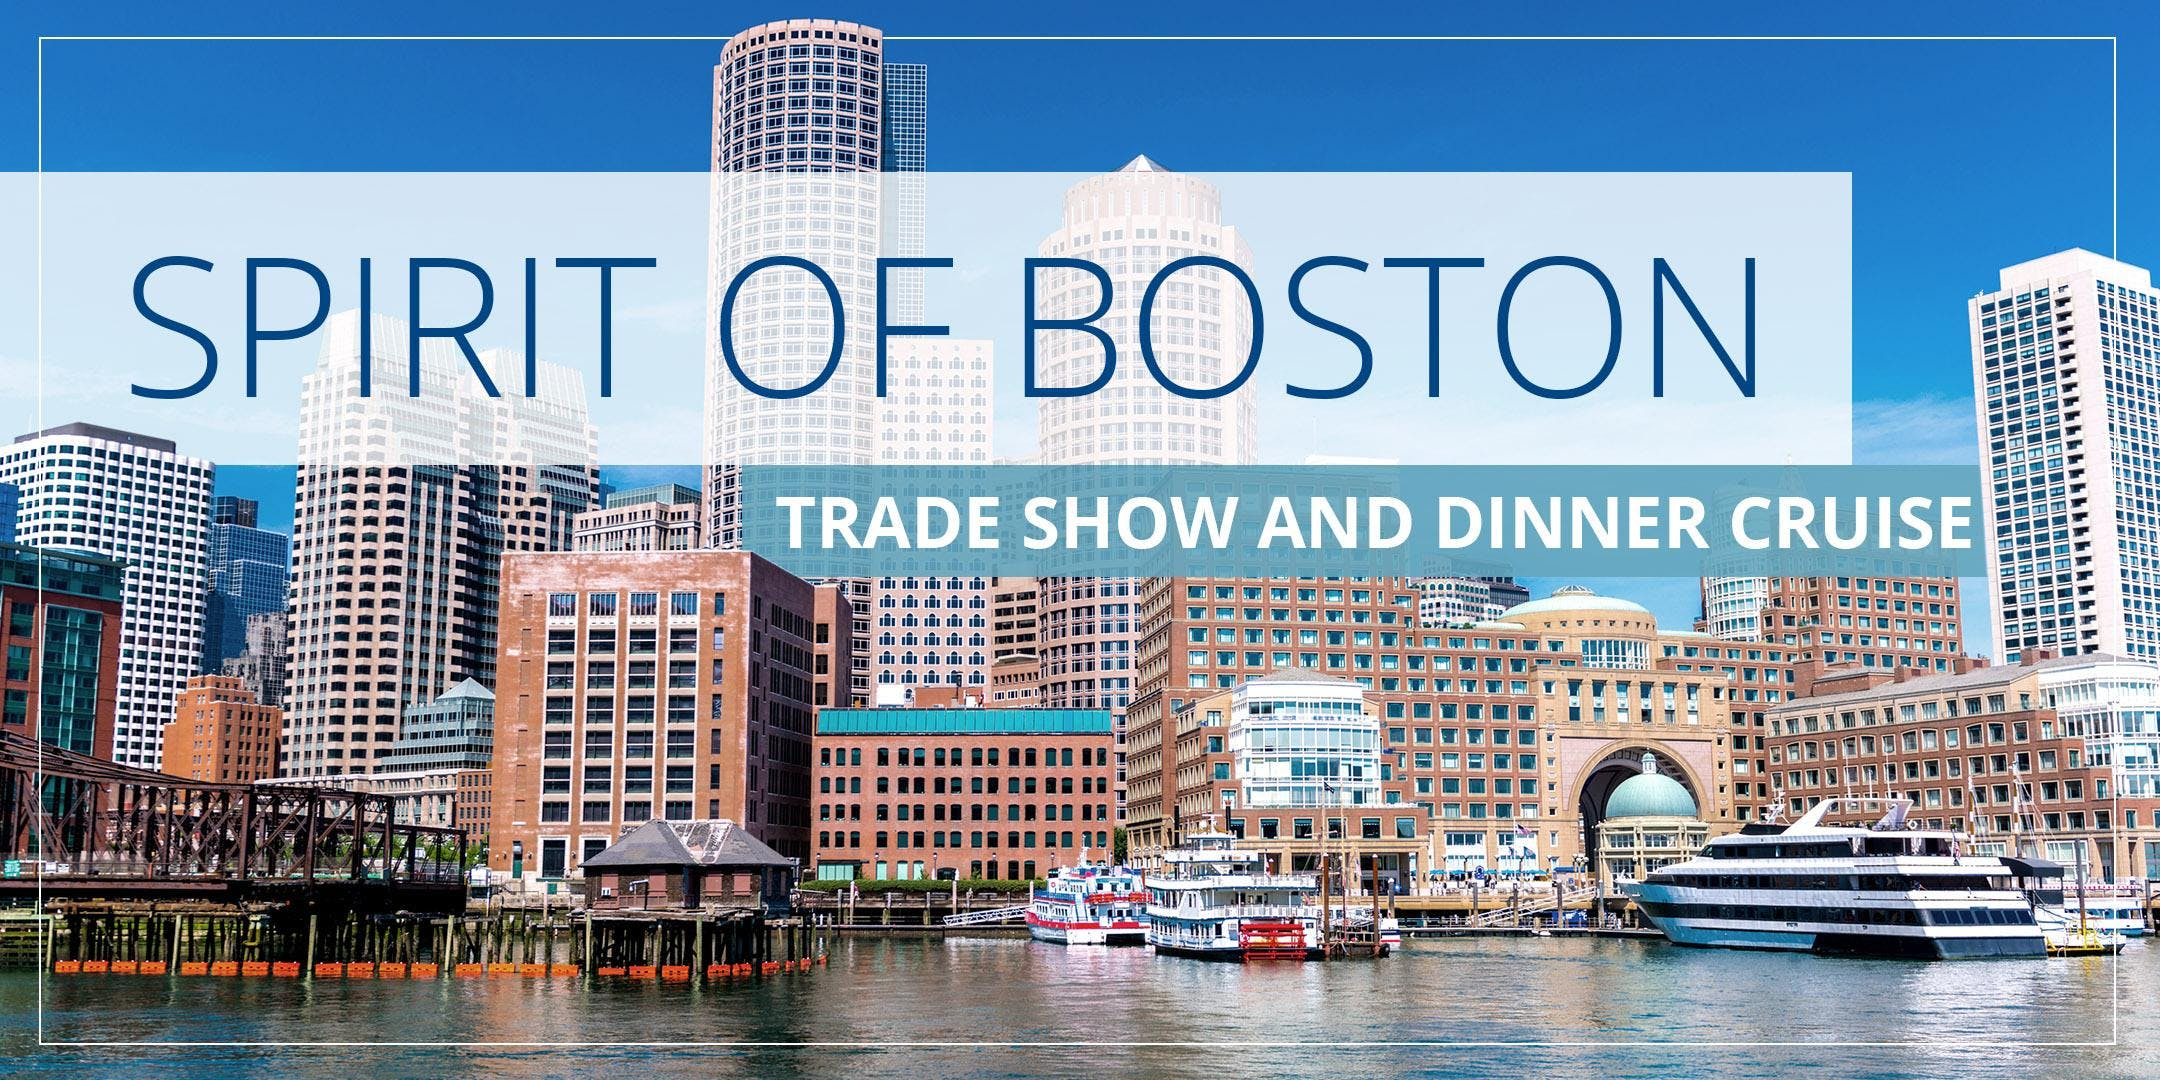 Spirit of Boston Trade Show and Dinner Cruise